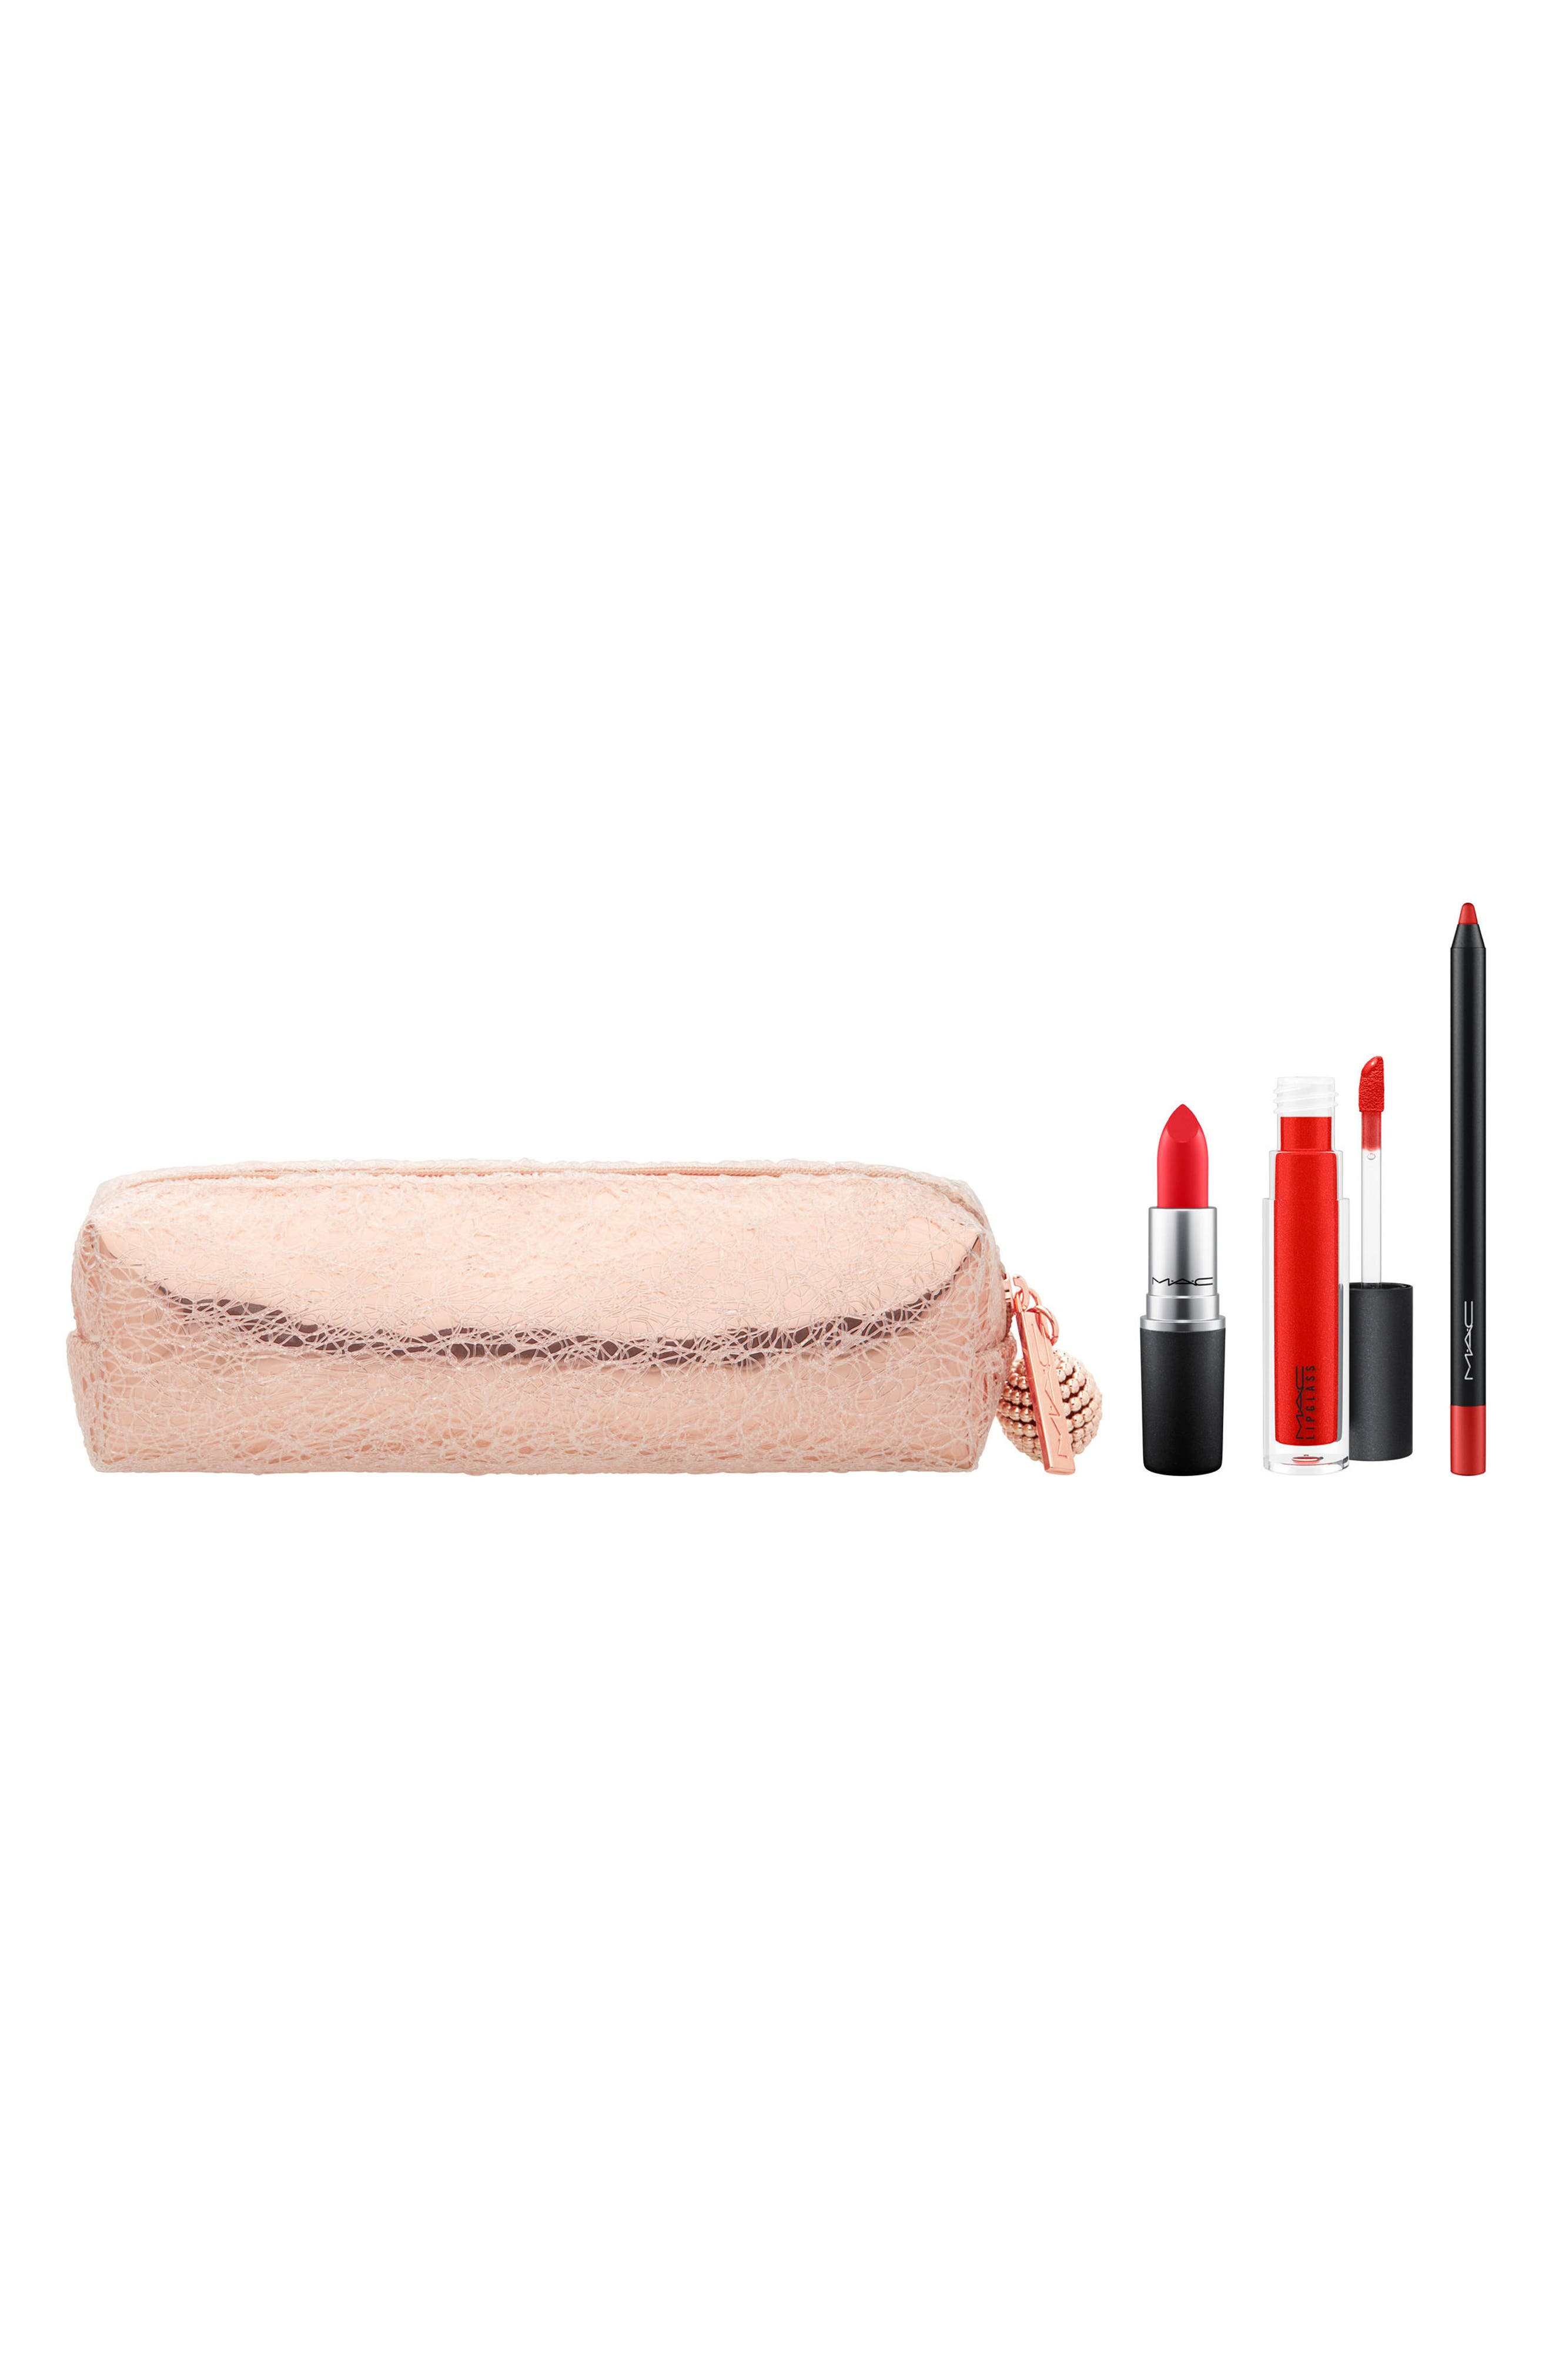 Lip Liner by rms beauty #16